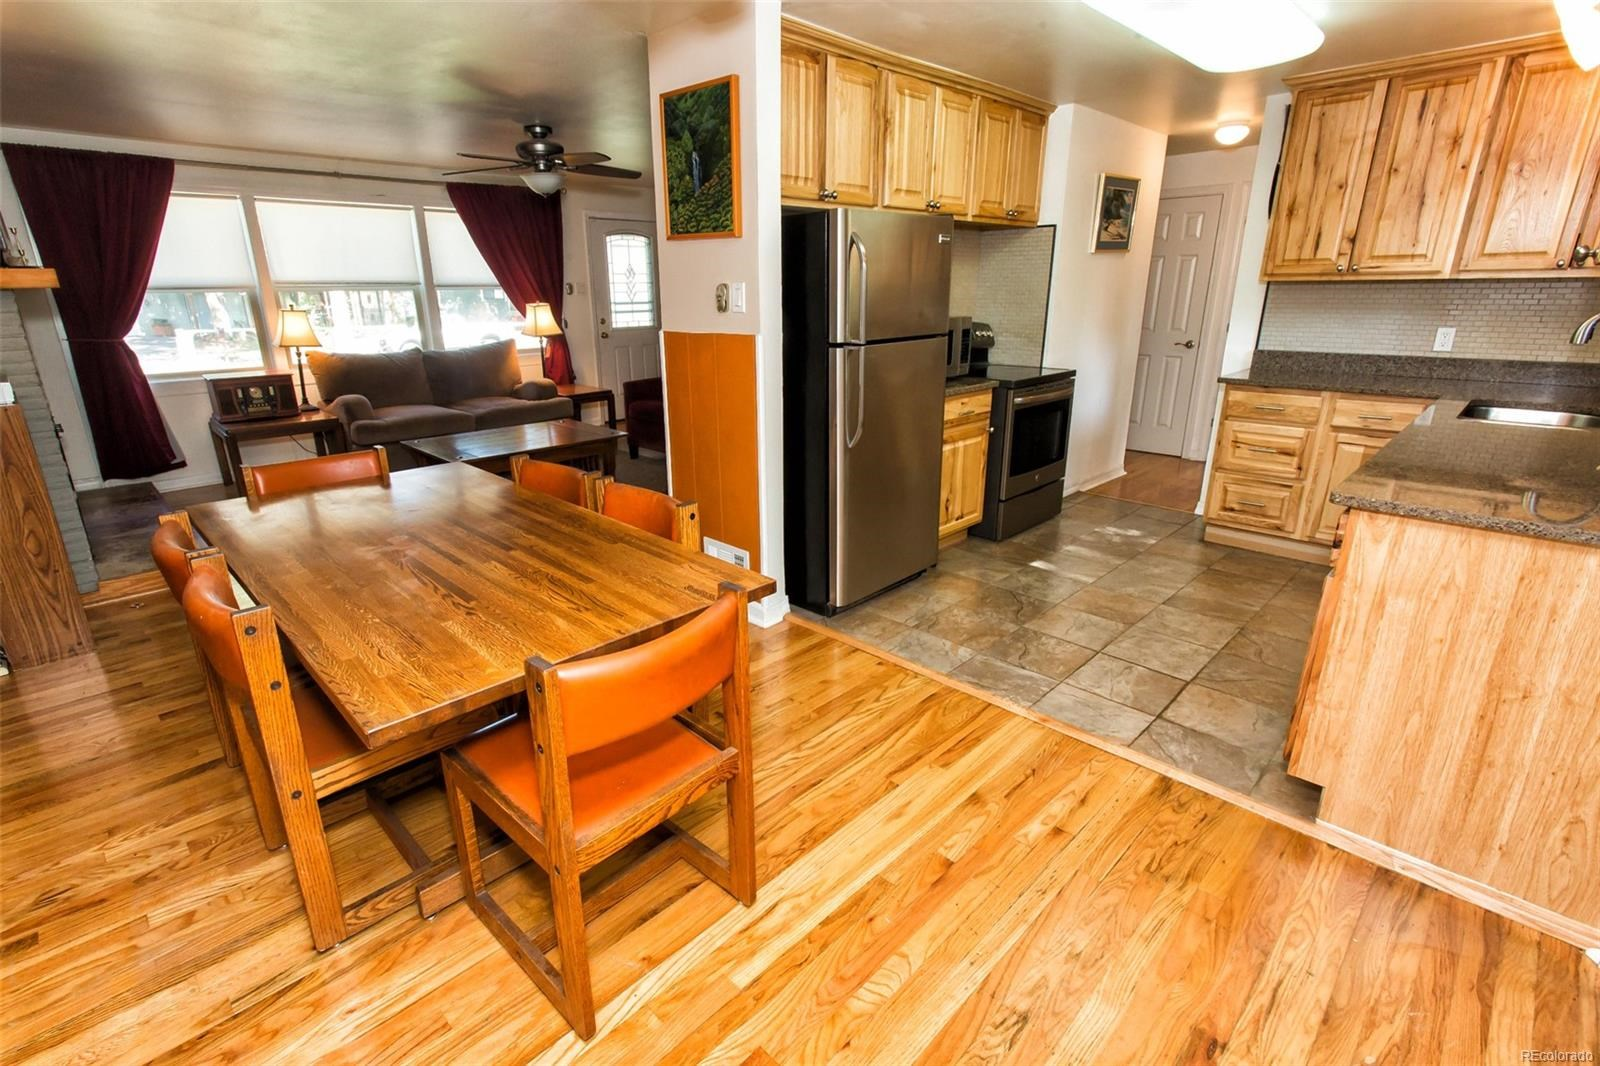 MLS# 1591889 - 10 - 10120 W 8th Place, Lakewood, CO 80215